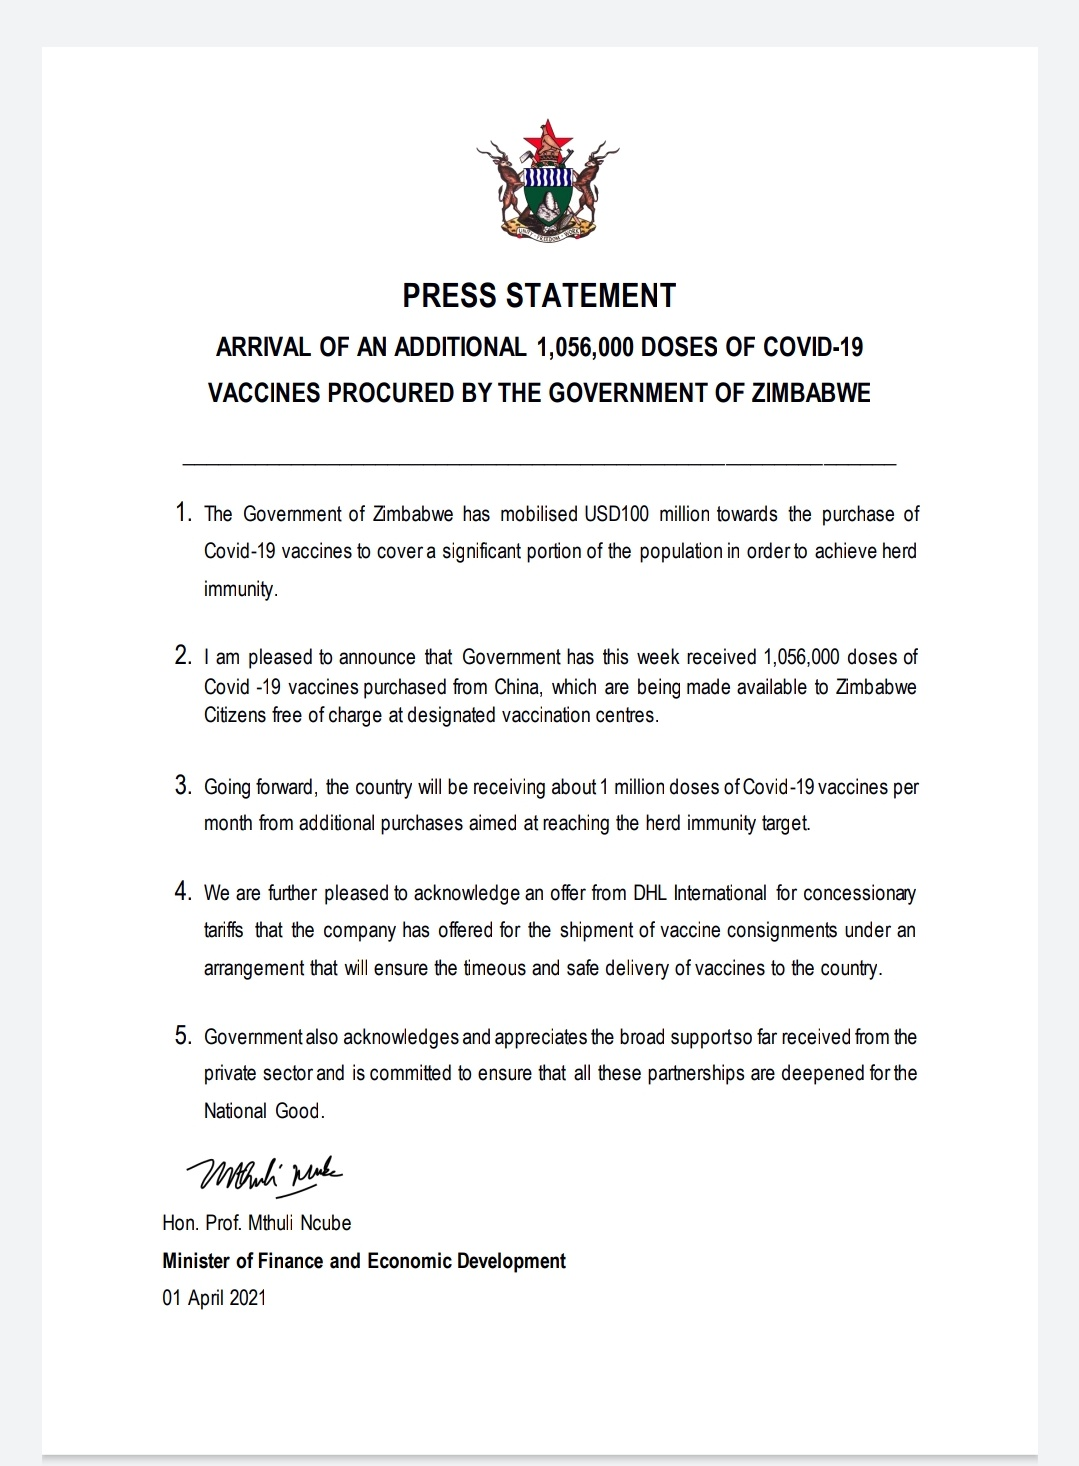 Zimbabwe To Receive 1 Million Covid-19 Vaccines Every Month